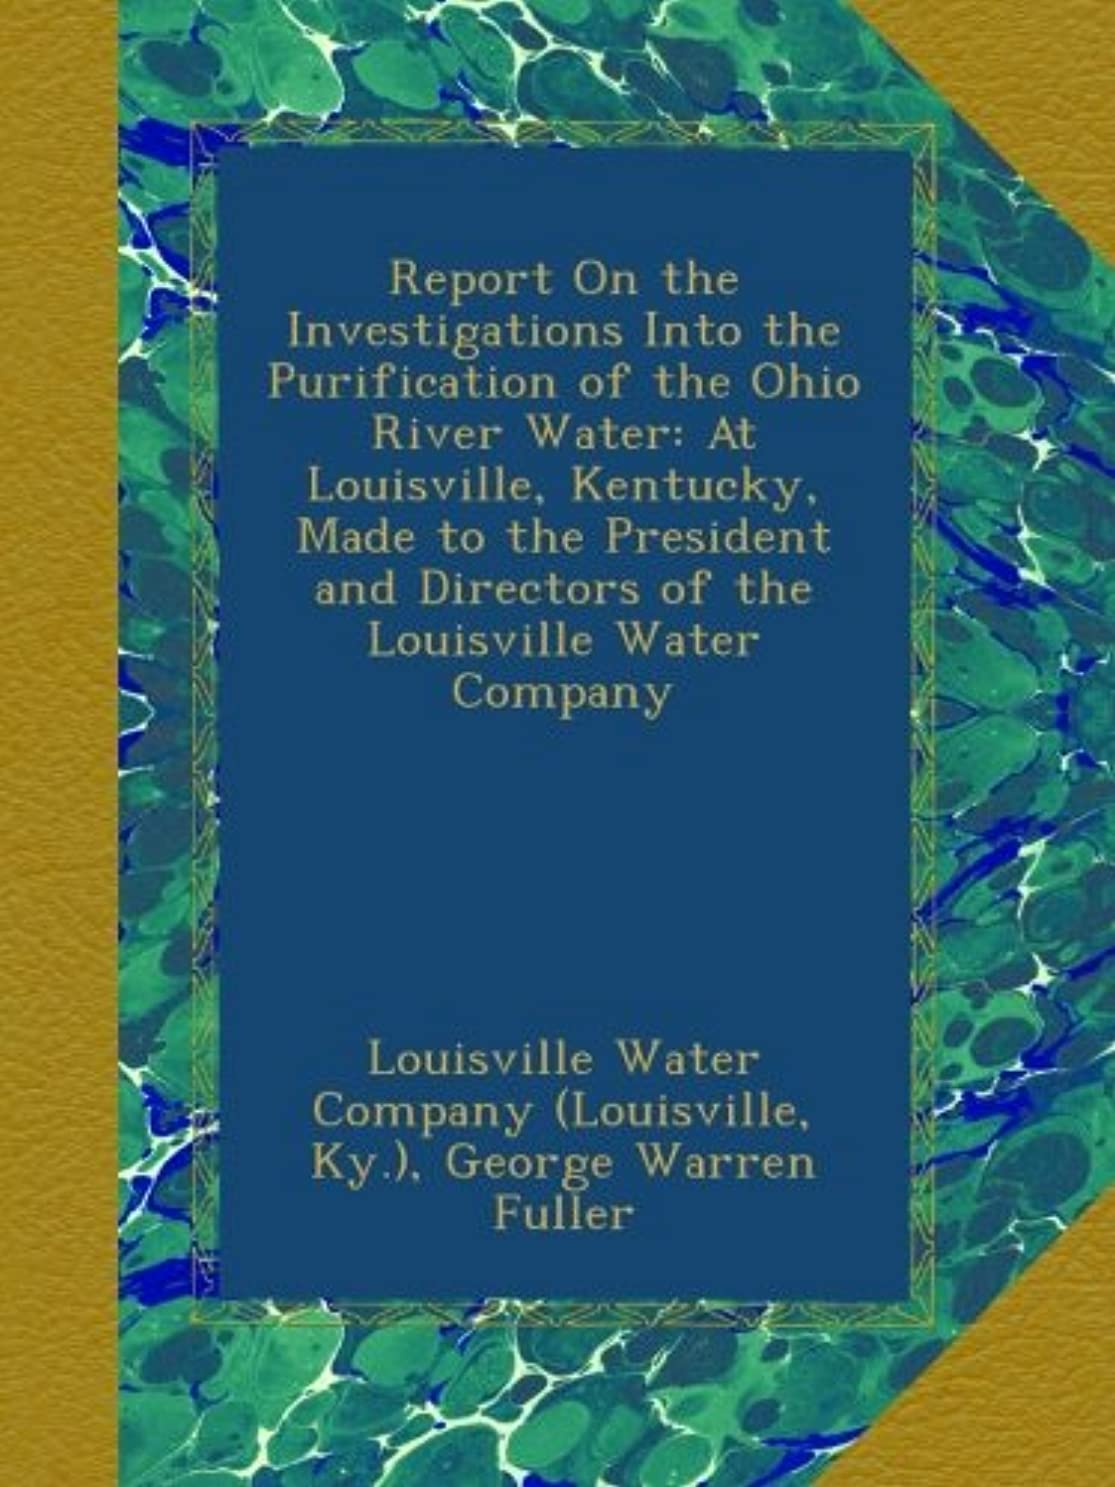 おそらく夏浅いReport On the Investigations Into the Purification of the Ohio River Water: At Louisville, Kentucky, Made to the President and Directors of the Louisville Water Company